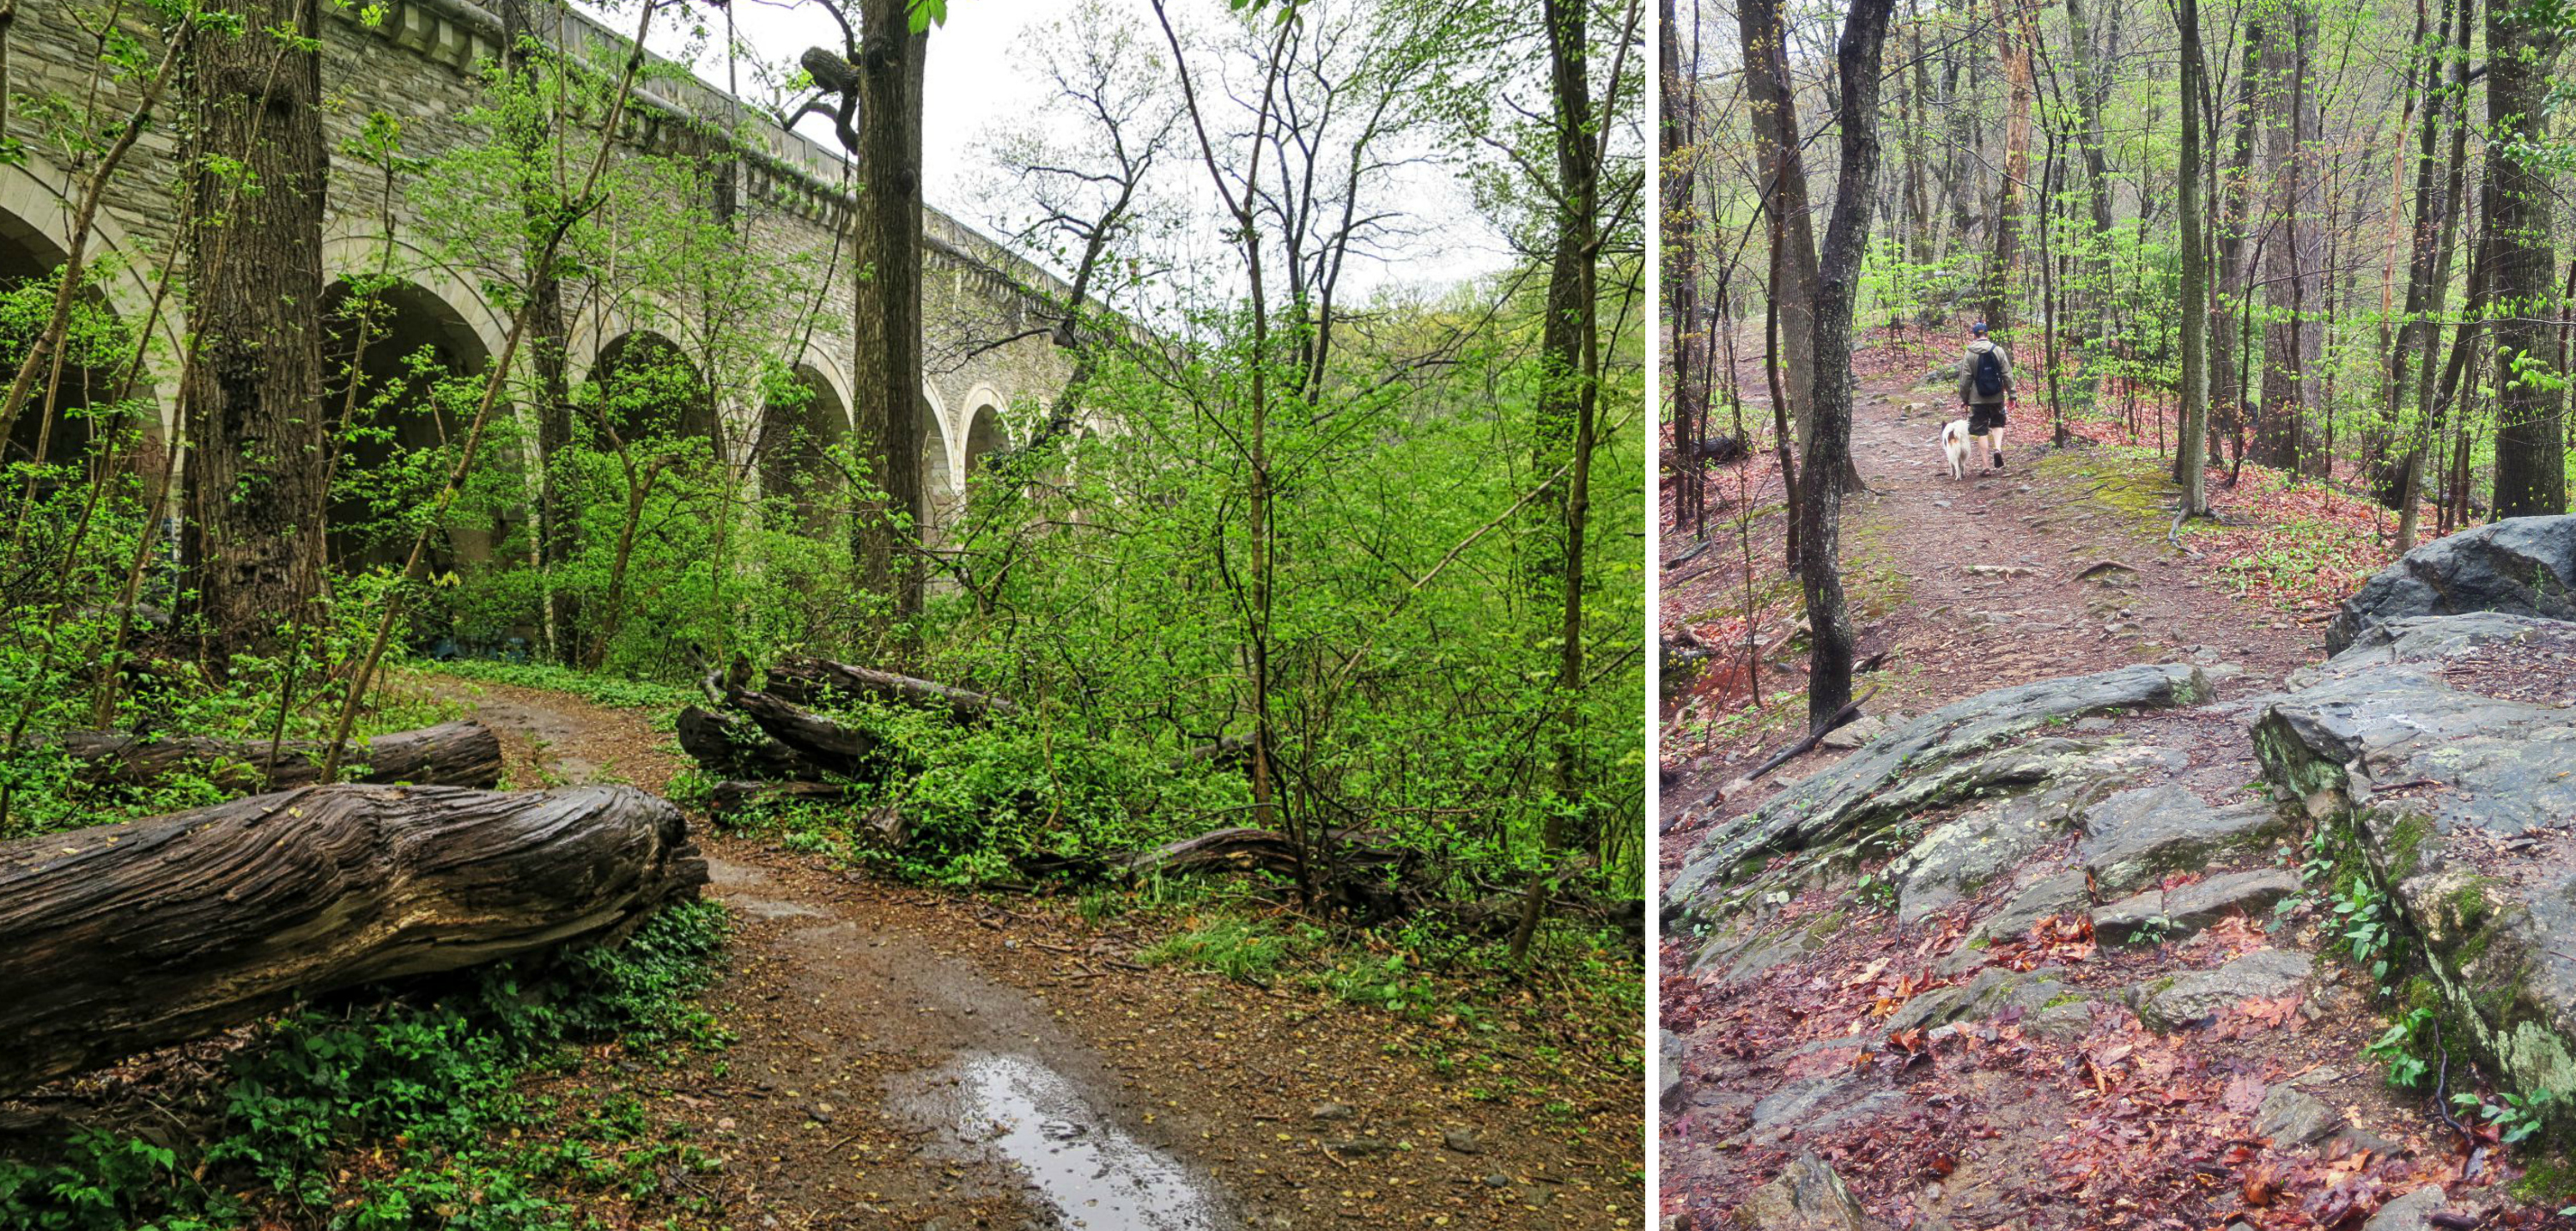 EastFallsLocal 4-23 Wissahickon collage